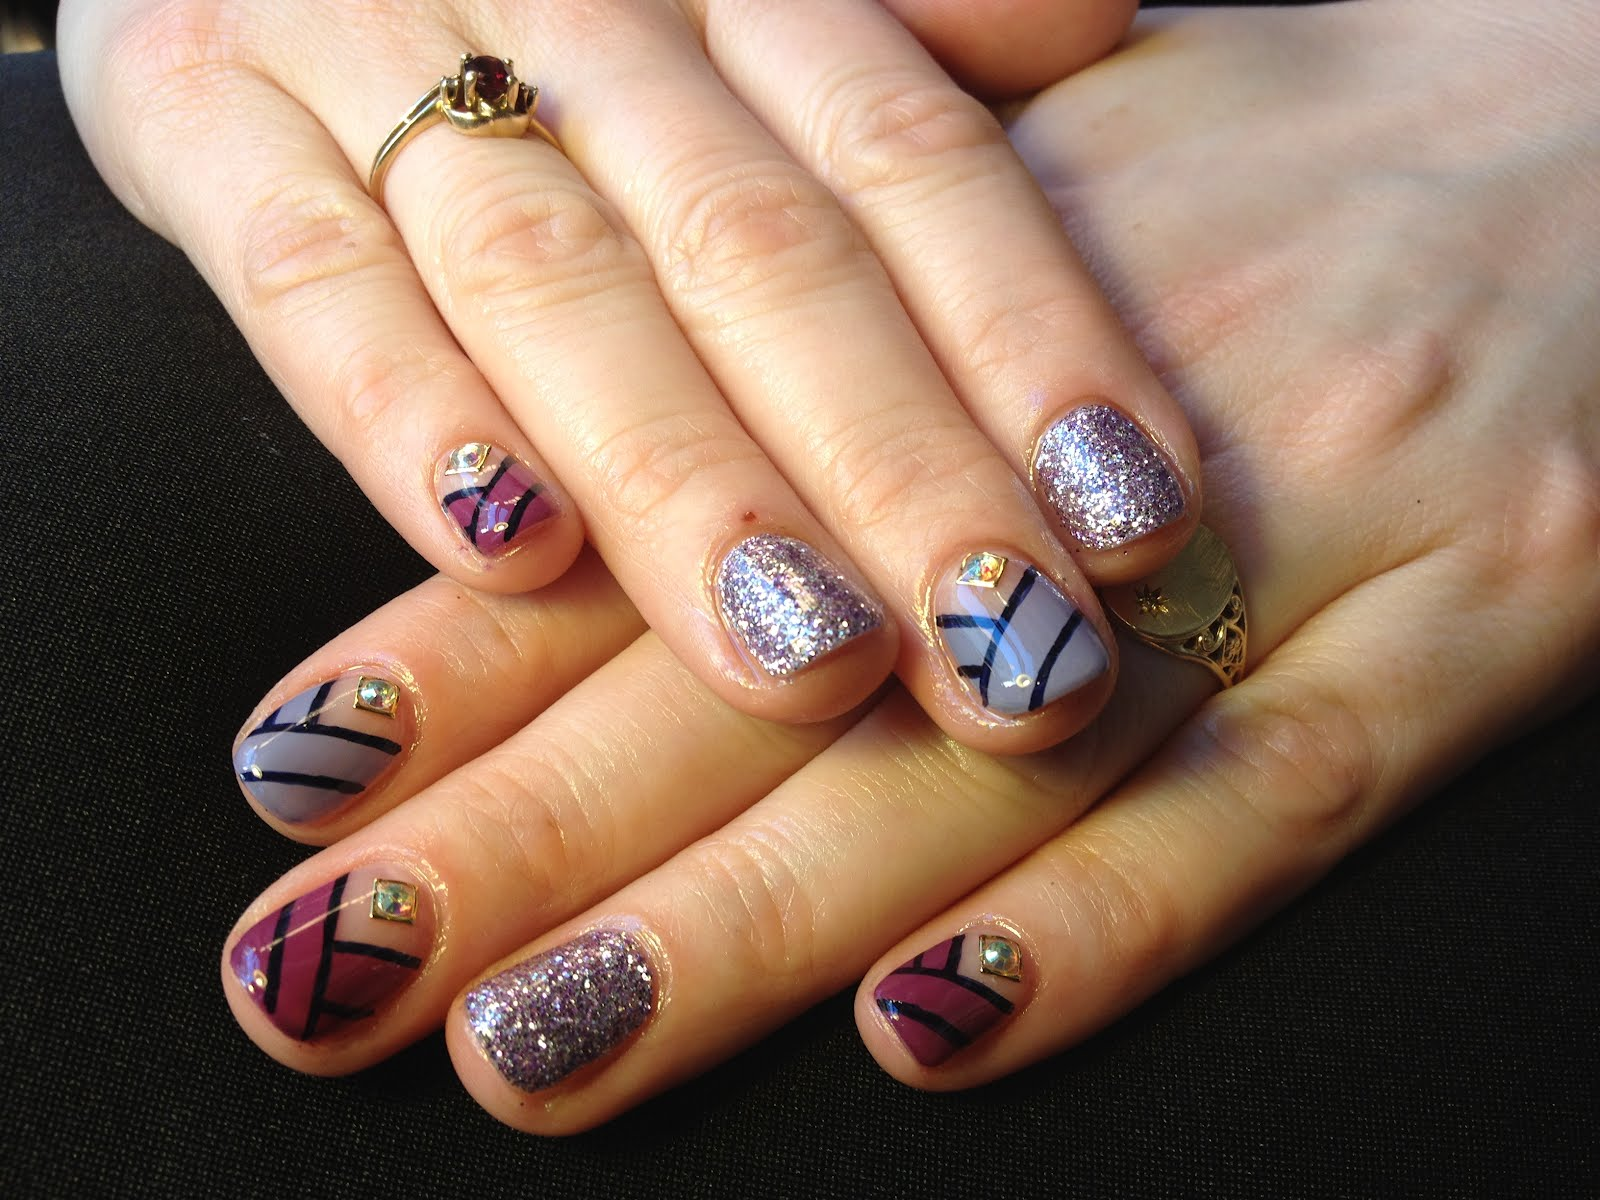 nails, nail art, nail polish, gel nails, Ran Kowatari, mani, manicure ...